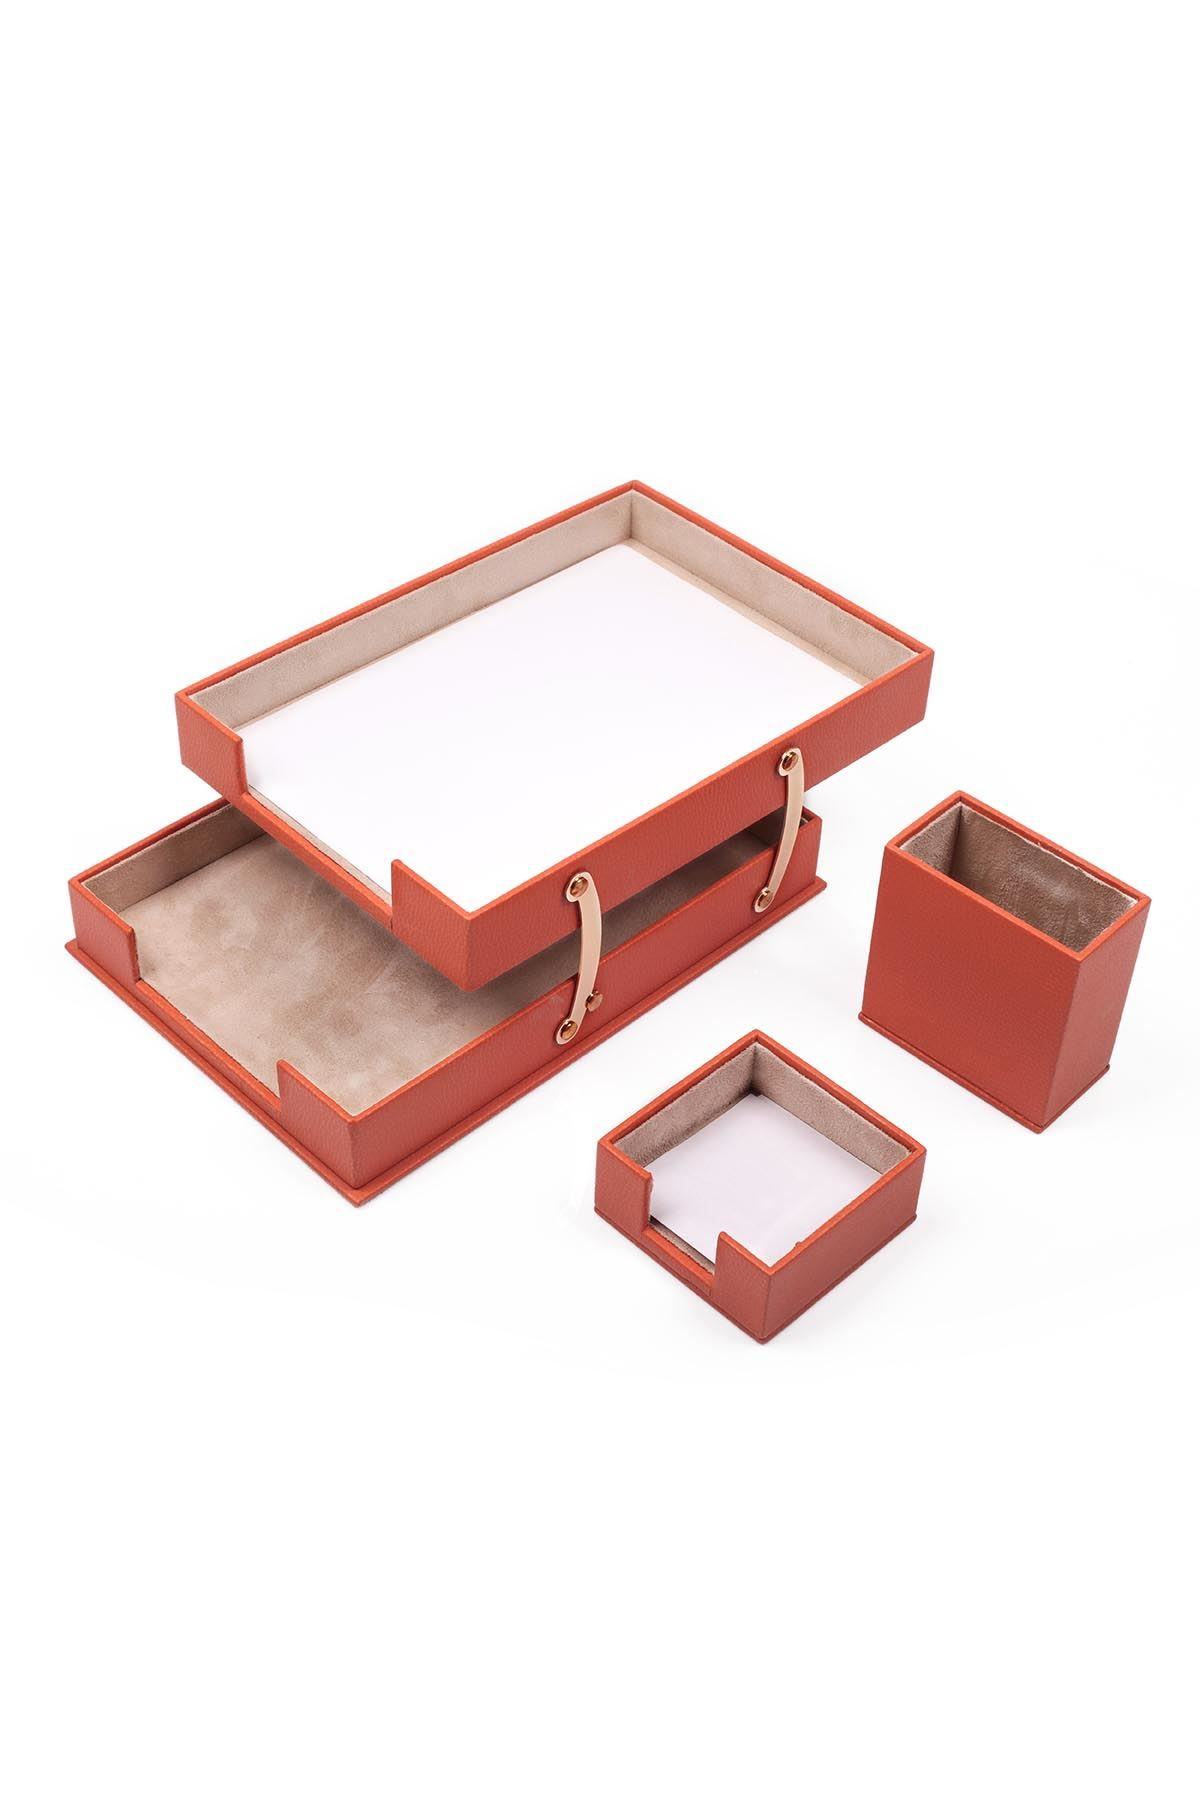 Double Document Tray With 2 Accessories Orange| Desk Set Accessories | Desktop Accessories | Desk Accessories | Desk Organizers